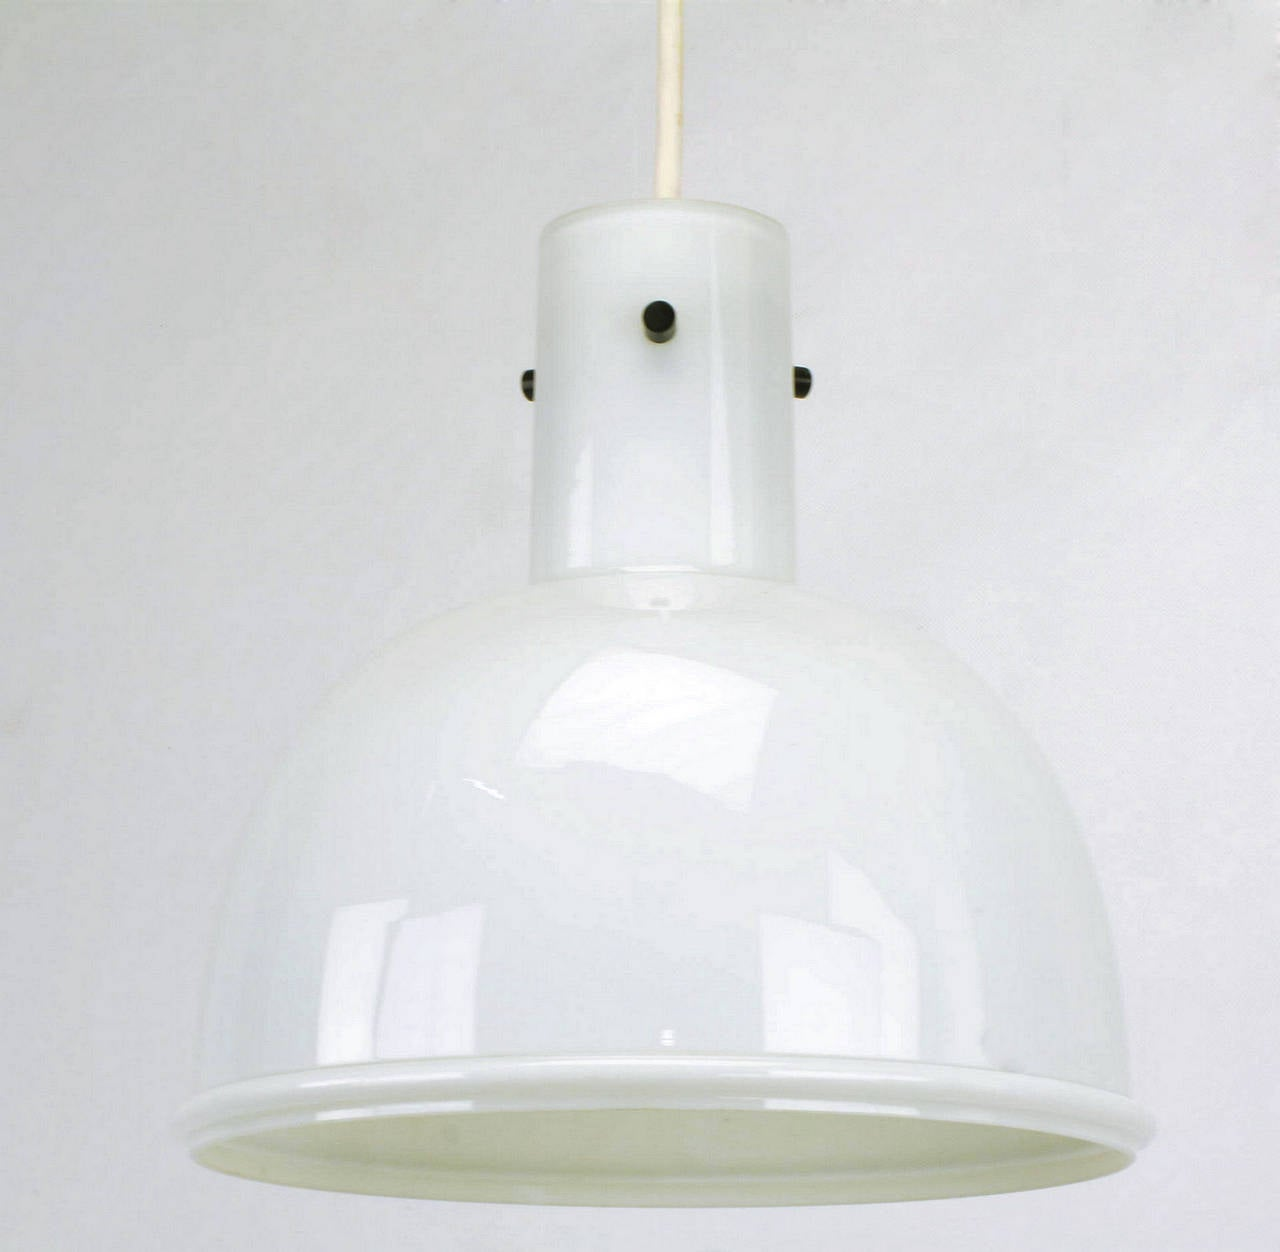 Lightolier cased glass pendant light with single cord suspension and three black metal stud fitters. 1970s import made by the stellar German firm Glashütte Limburg.   Overall drop with cord and canopy is 26